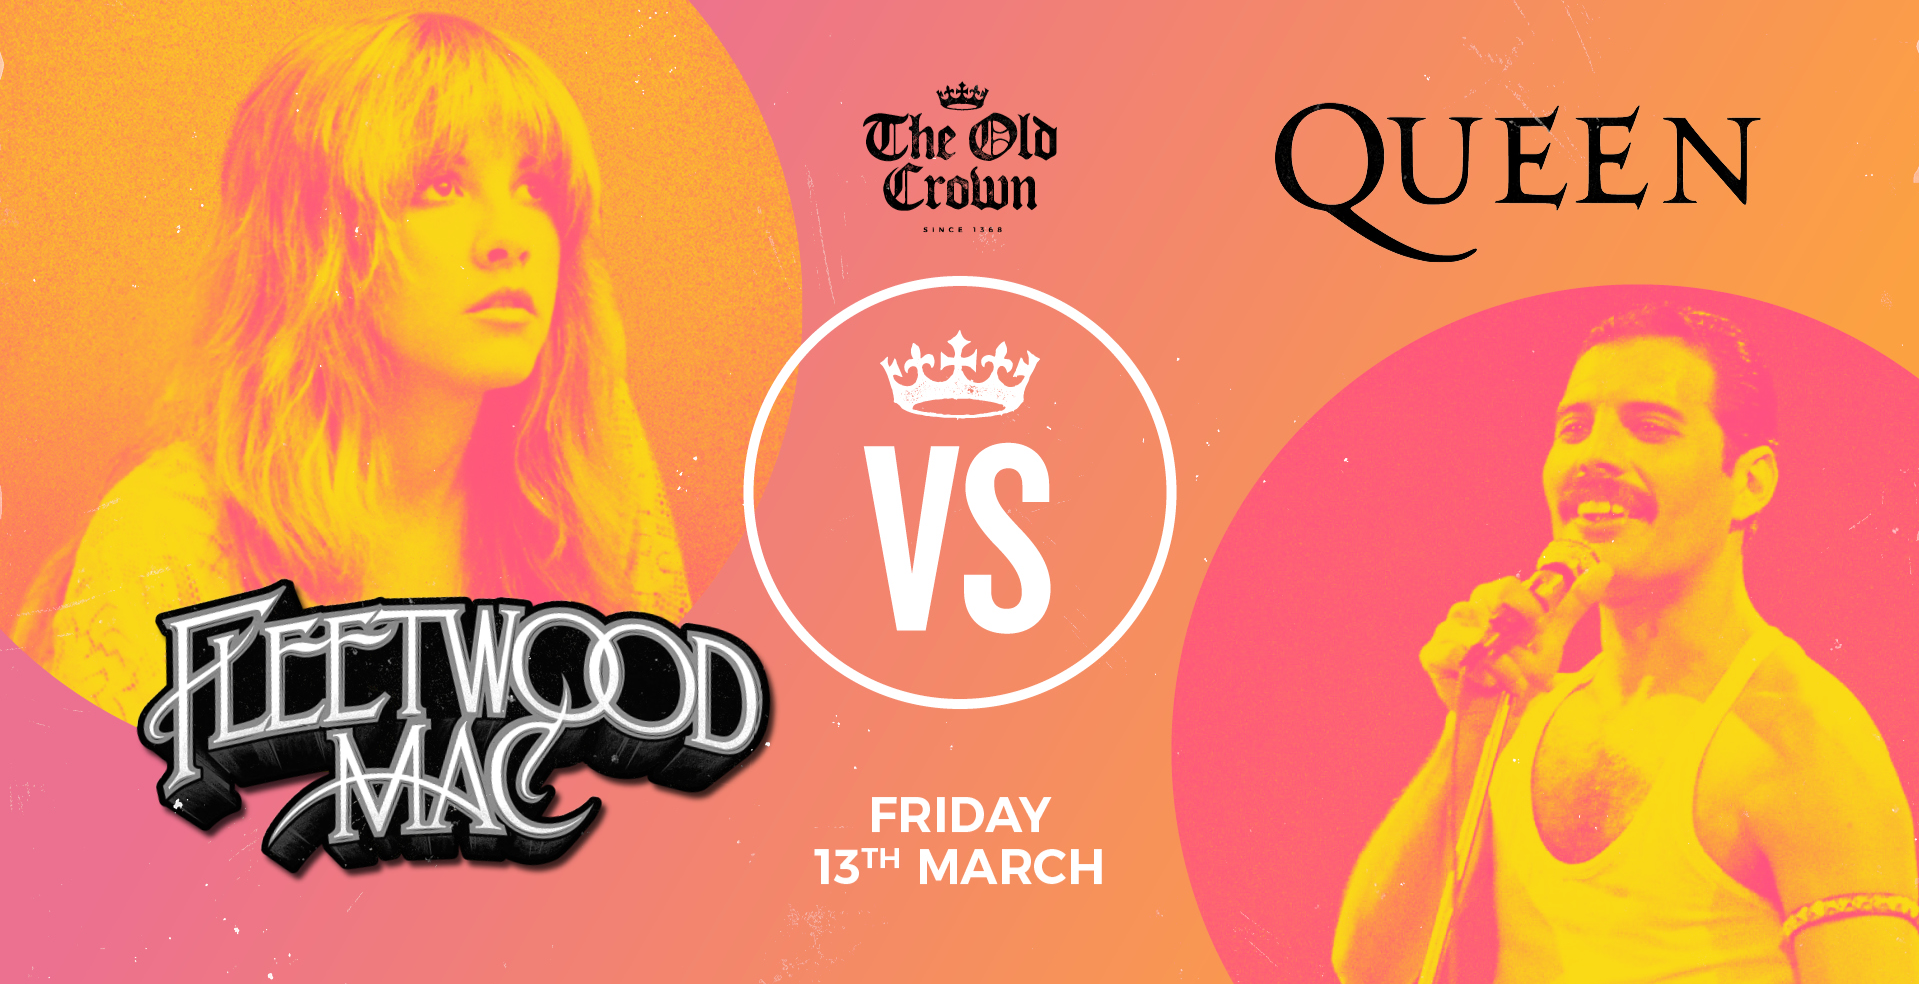 Fleetwood Mac VS Queen